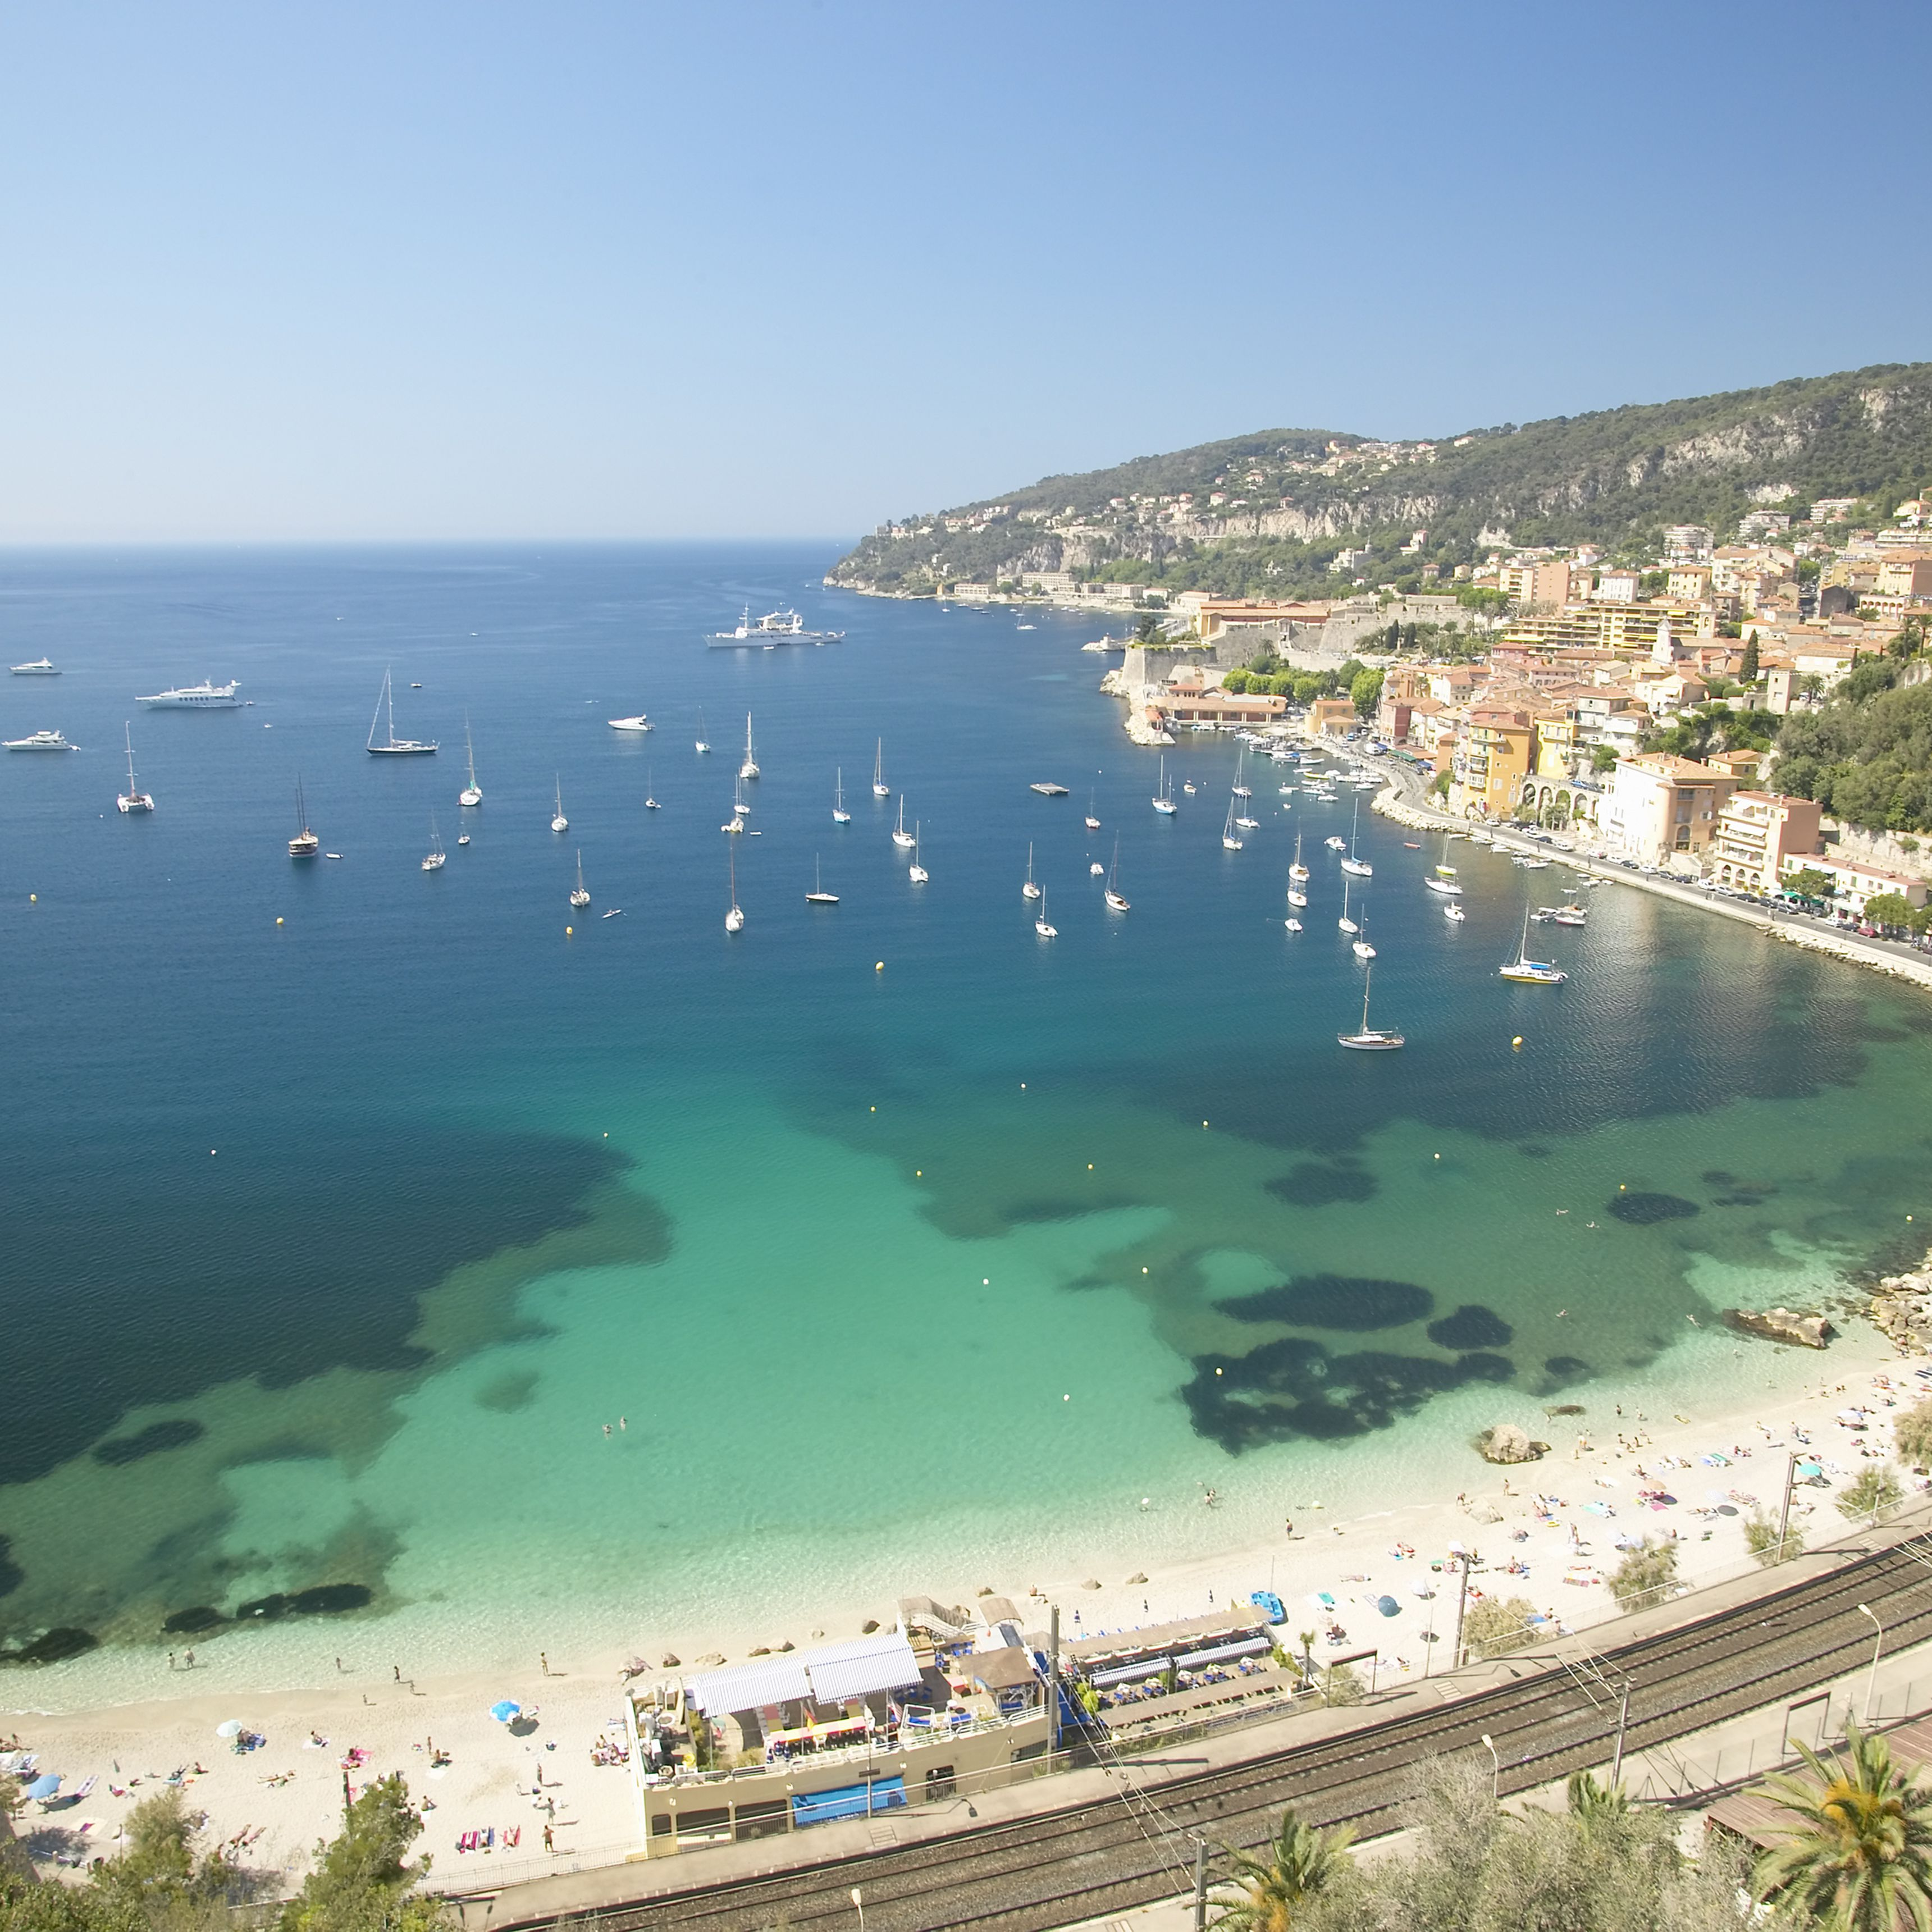 9-Stop Tour of the South of France